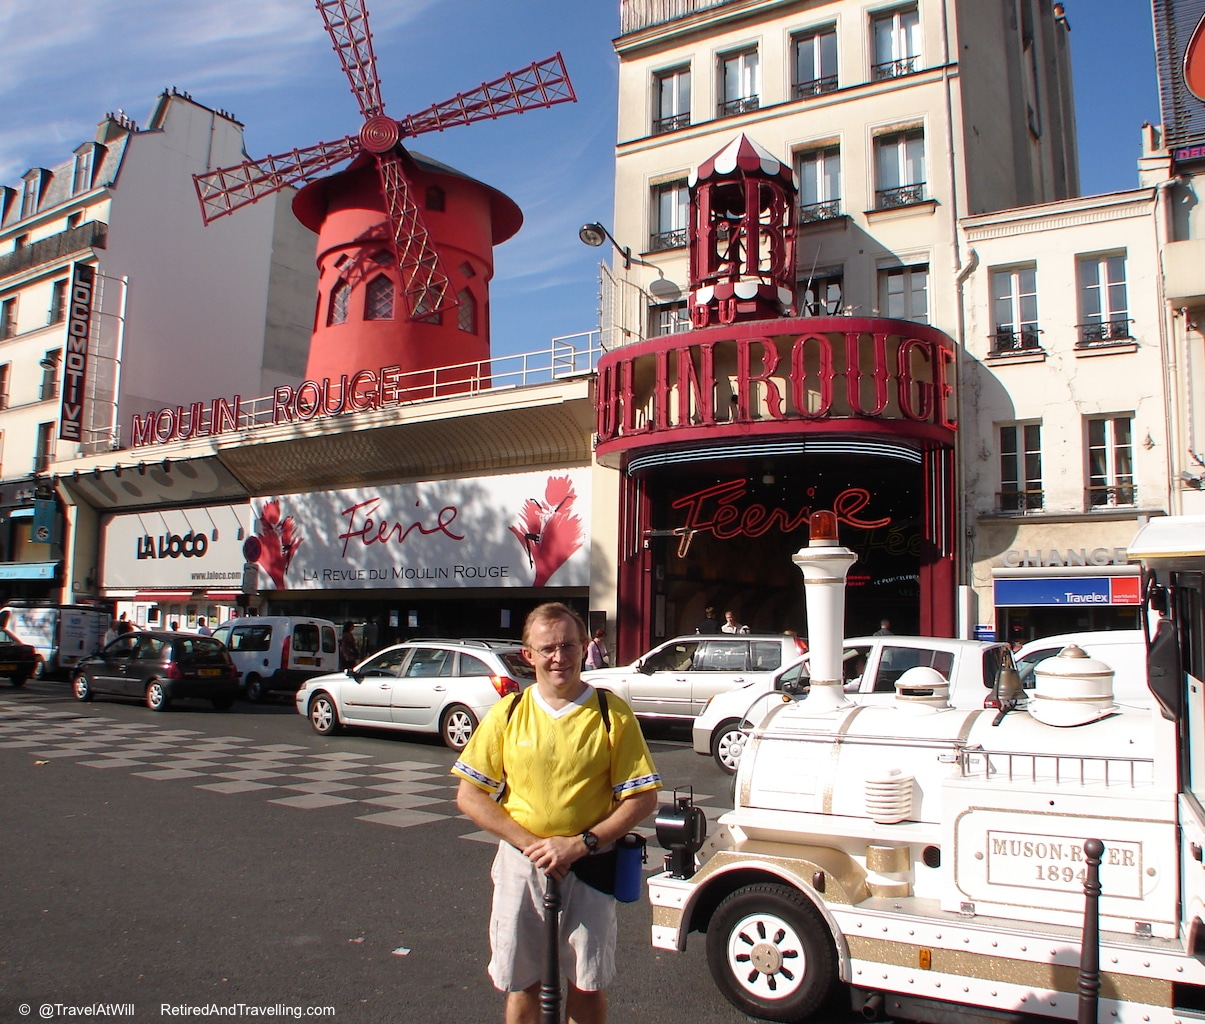 Moulin Rouge - Iconic Paris Sights.jpg